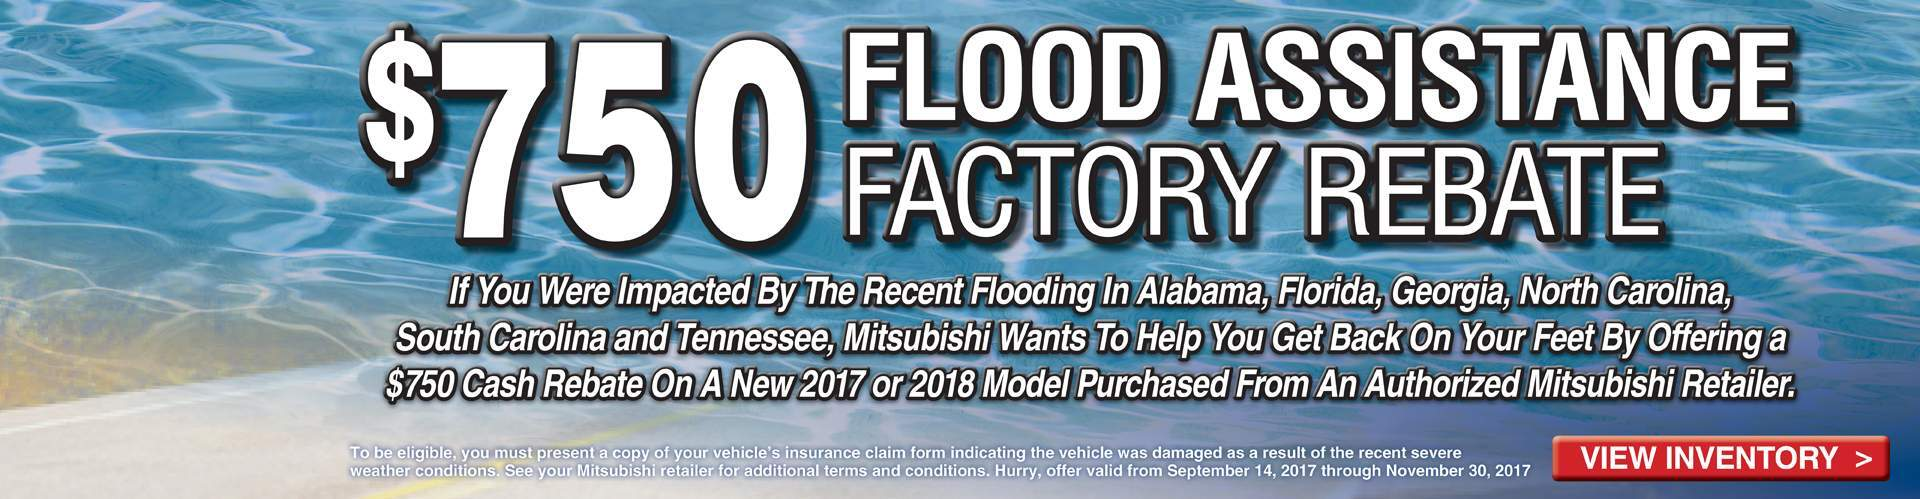 Just Announced - Miami Lakes Mitsubishi Flood Assistance Rebate!